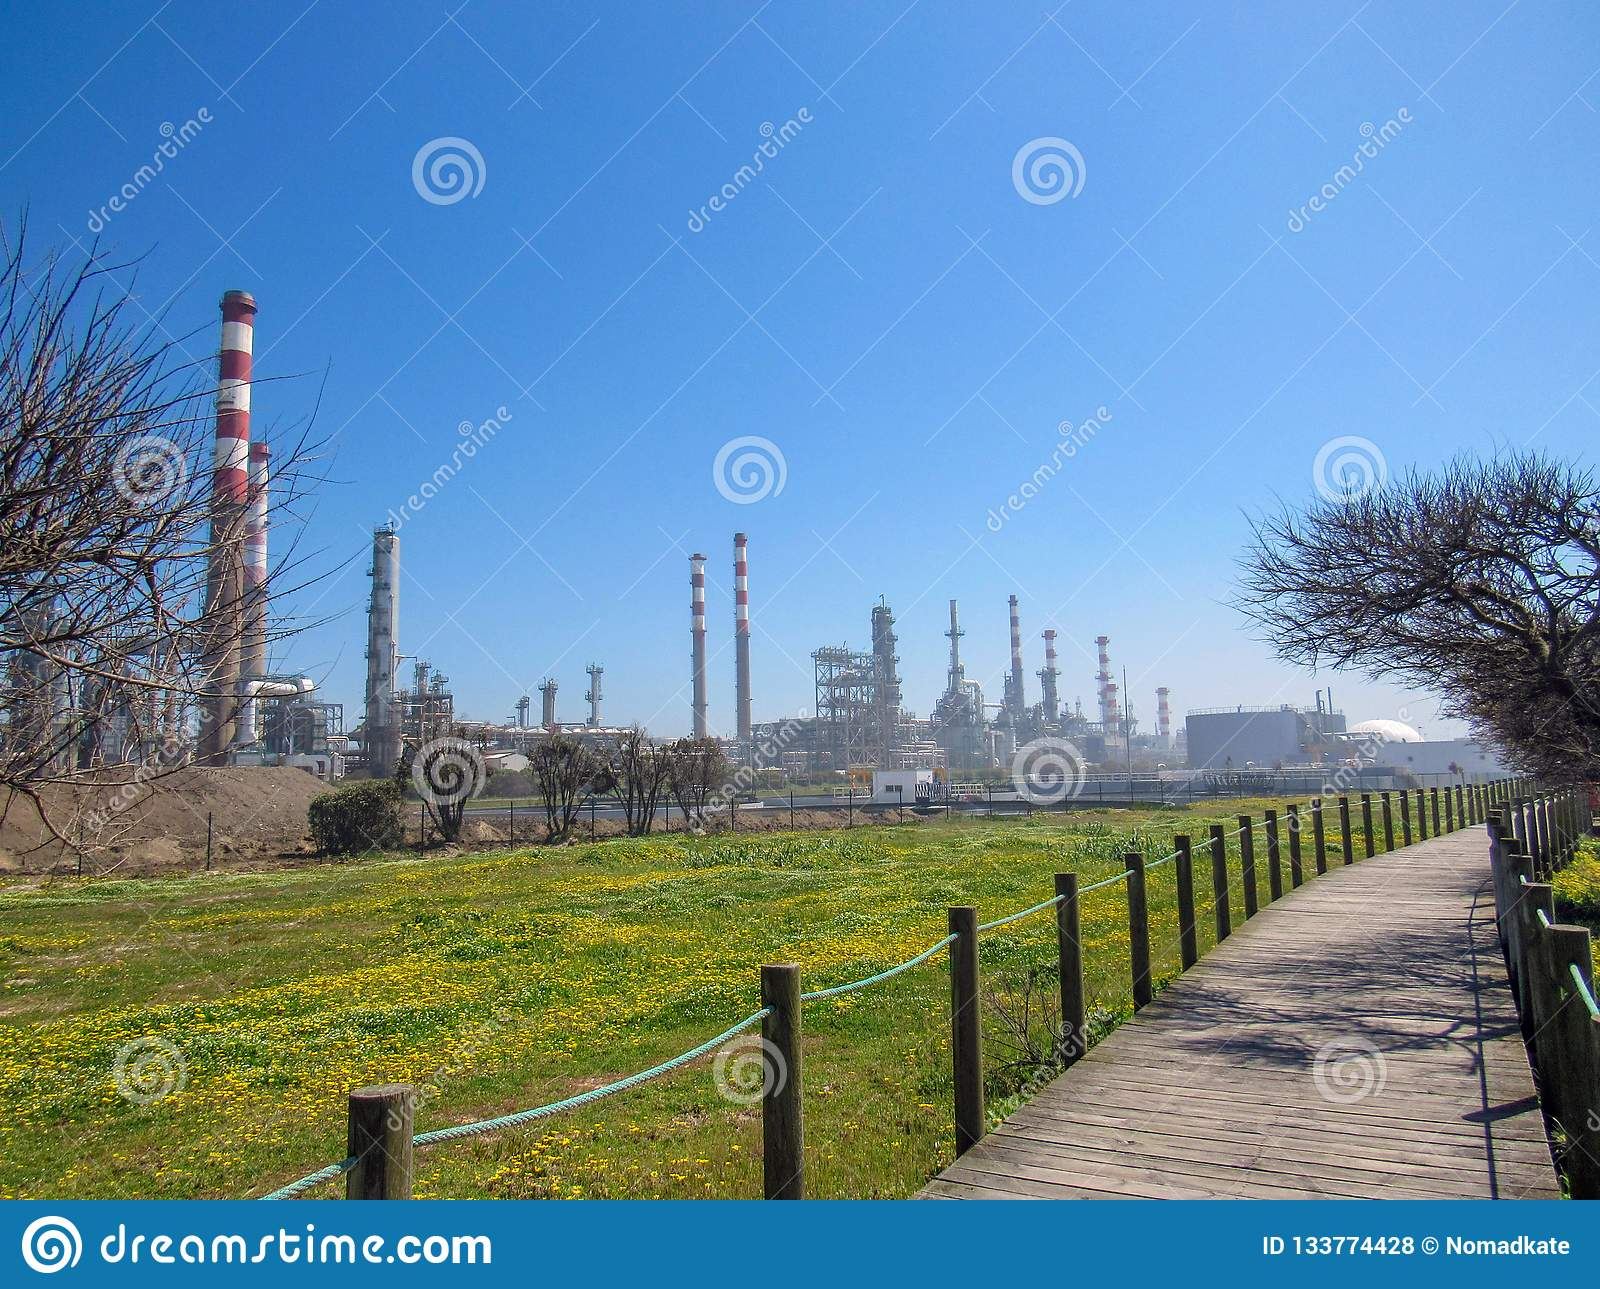 Industrial landscape with plant factory chimneys and beautiful spring nature landscape, Portugal